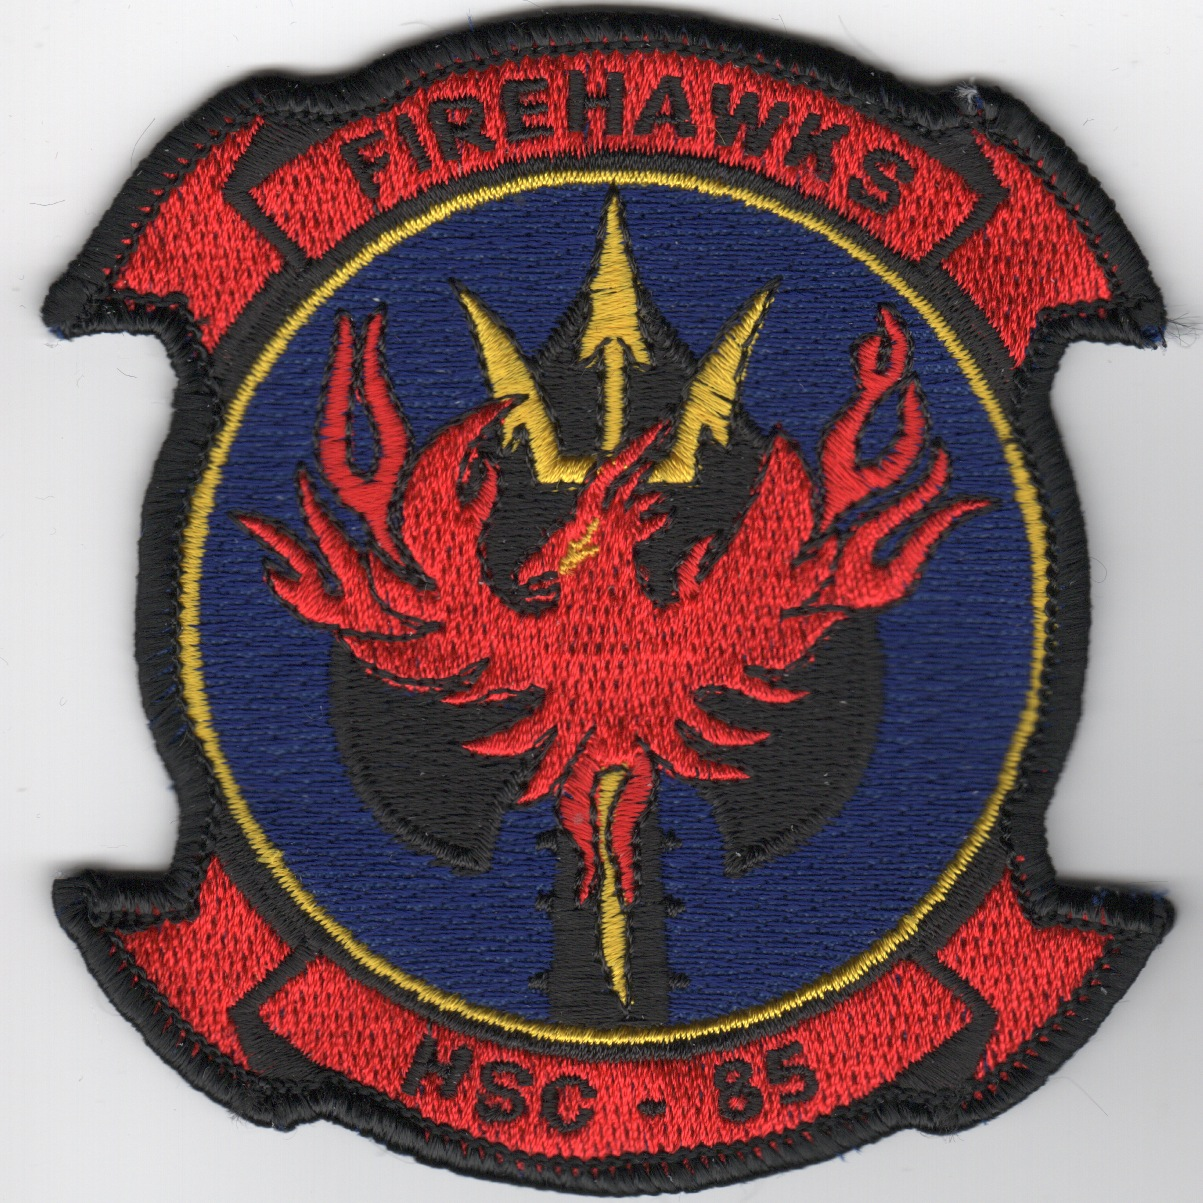 HSC-85 Sqdn Patch (Red/Blue)